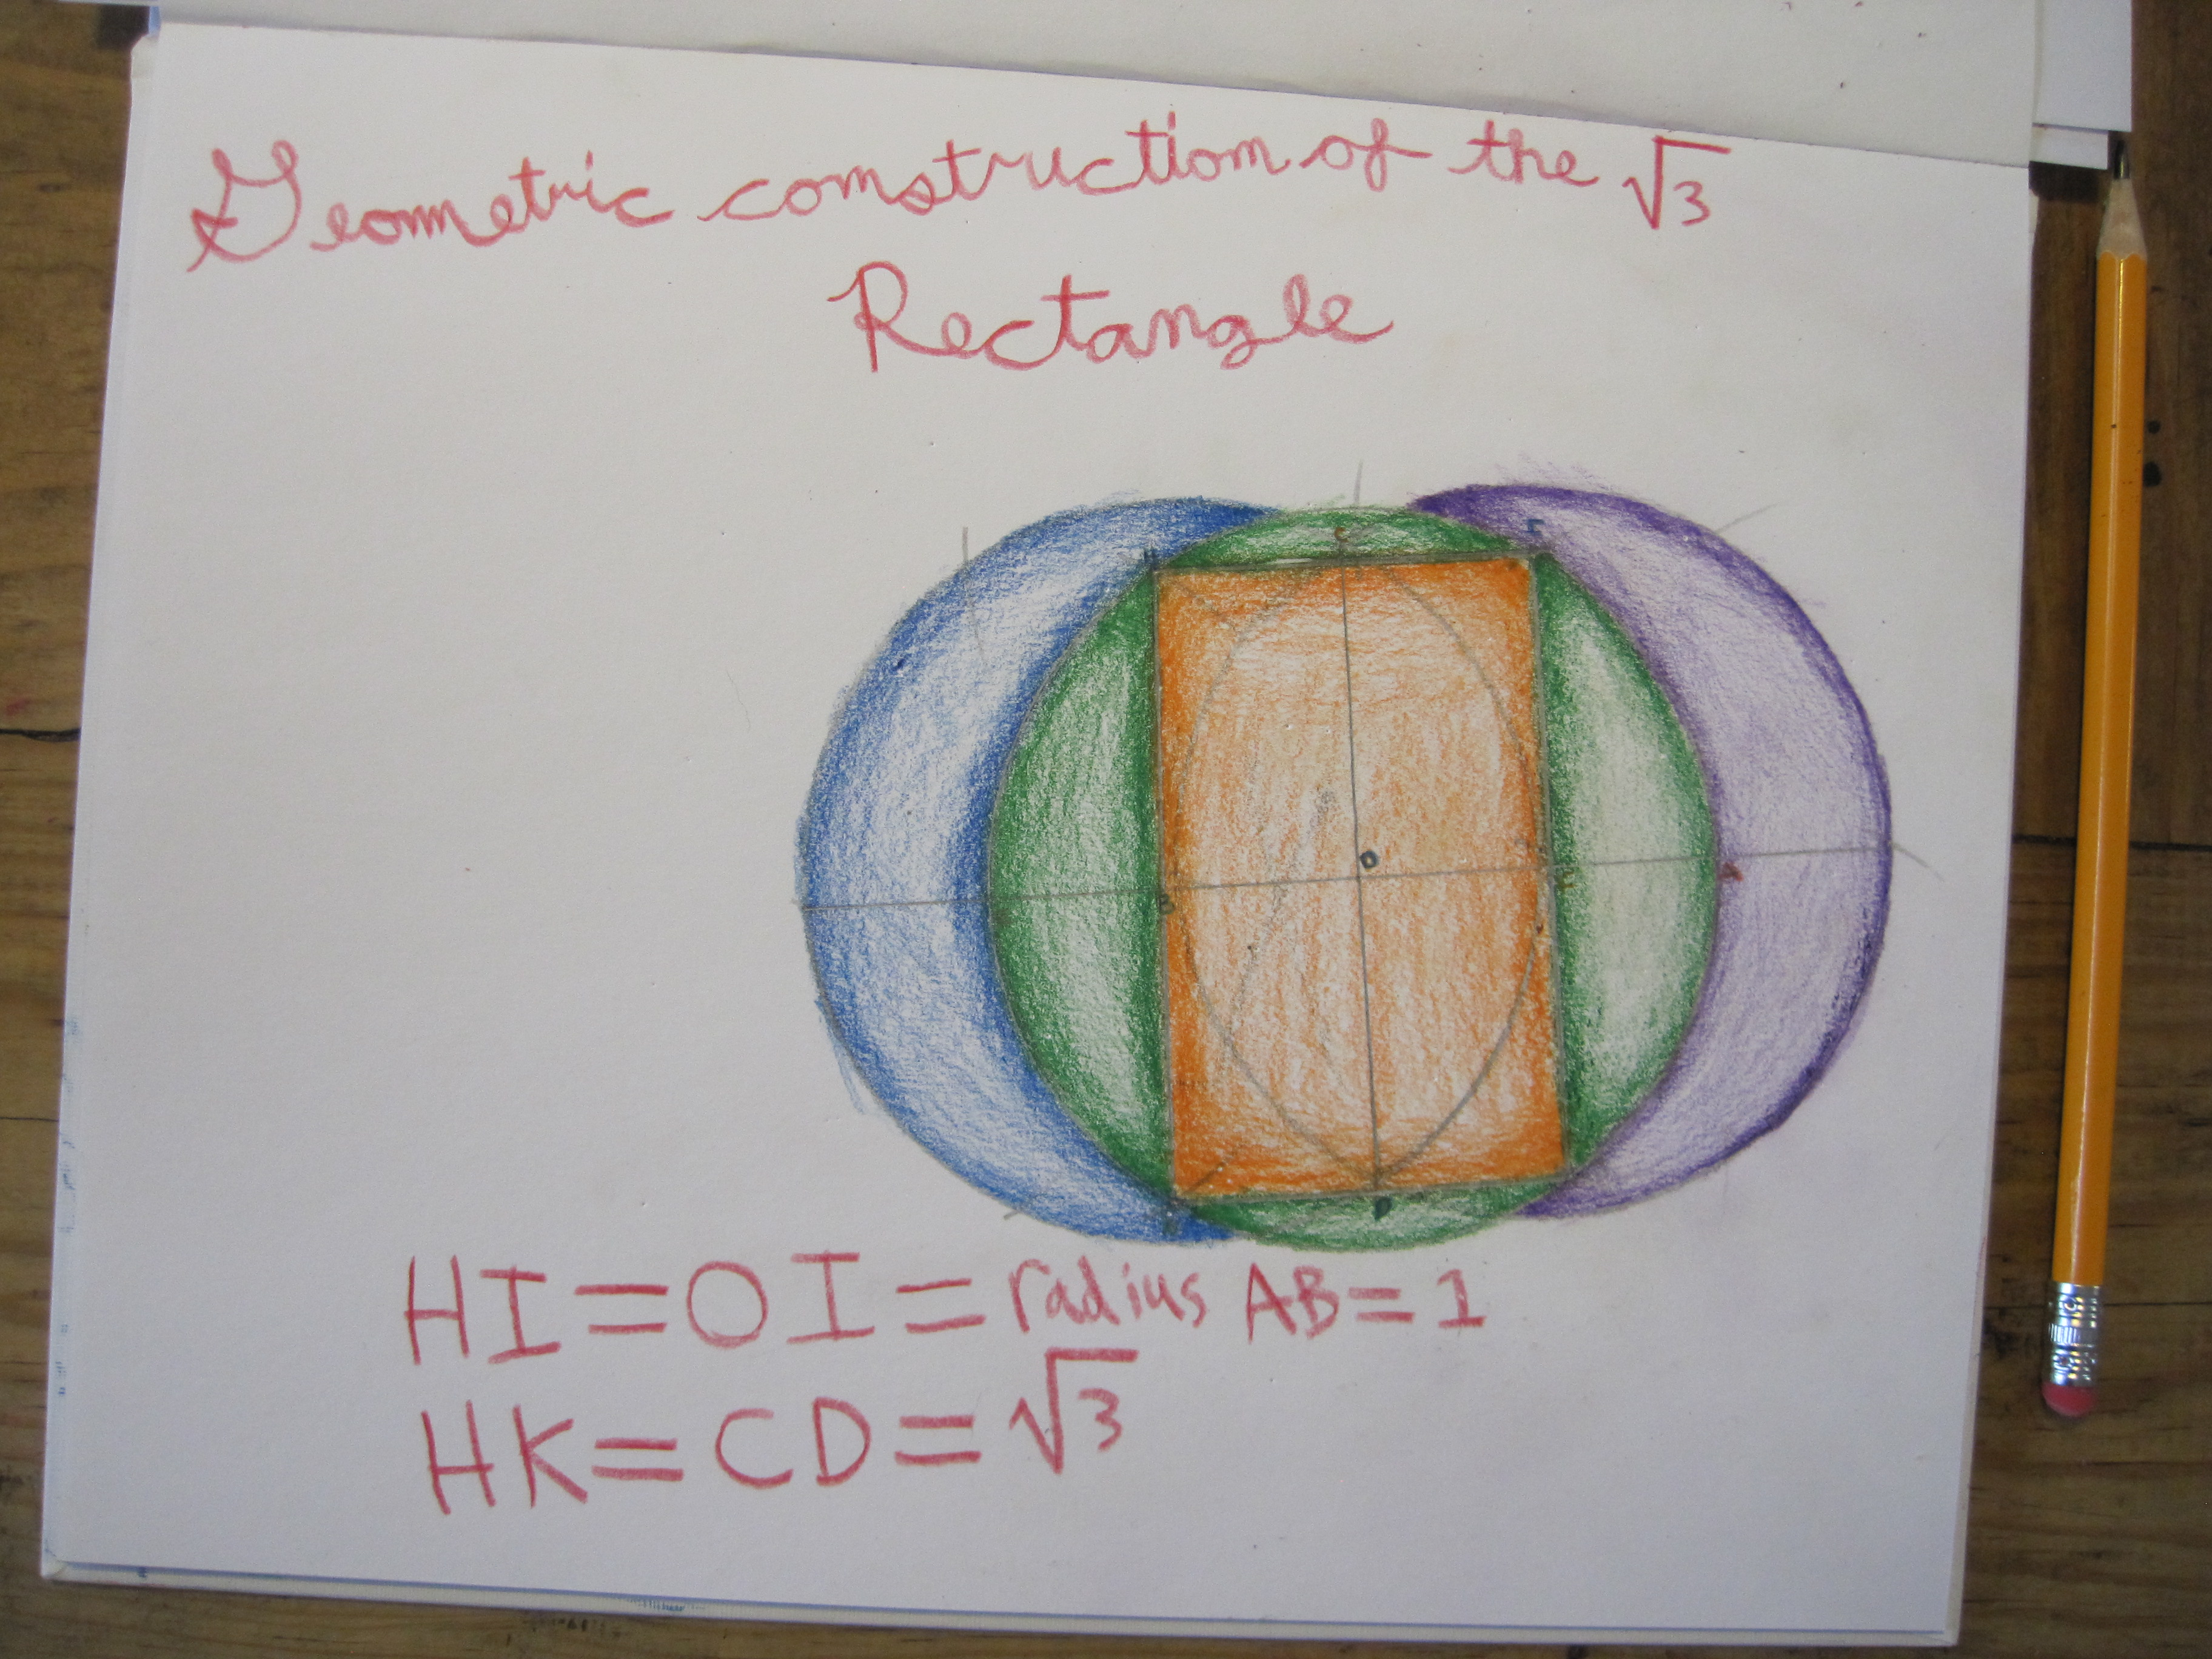 Geometric Construction of the Root Three Rectangle